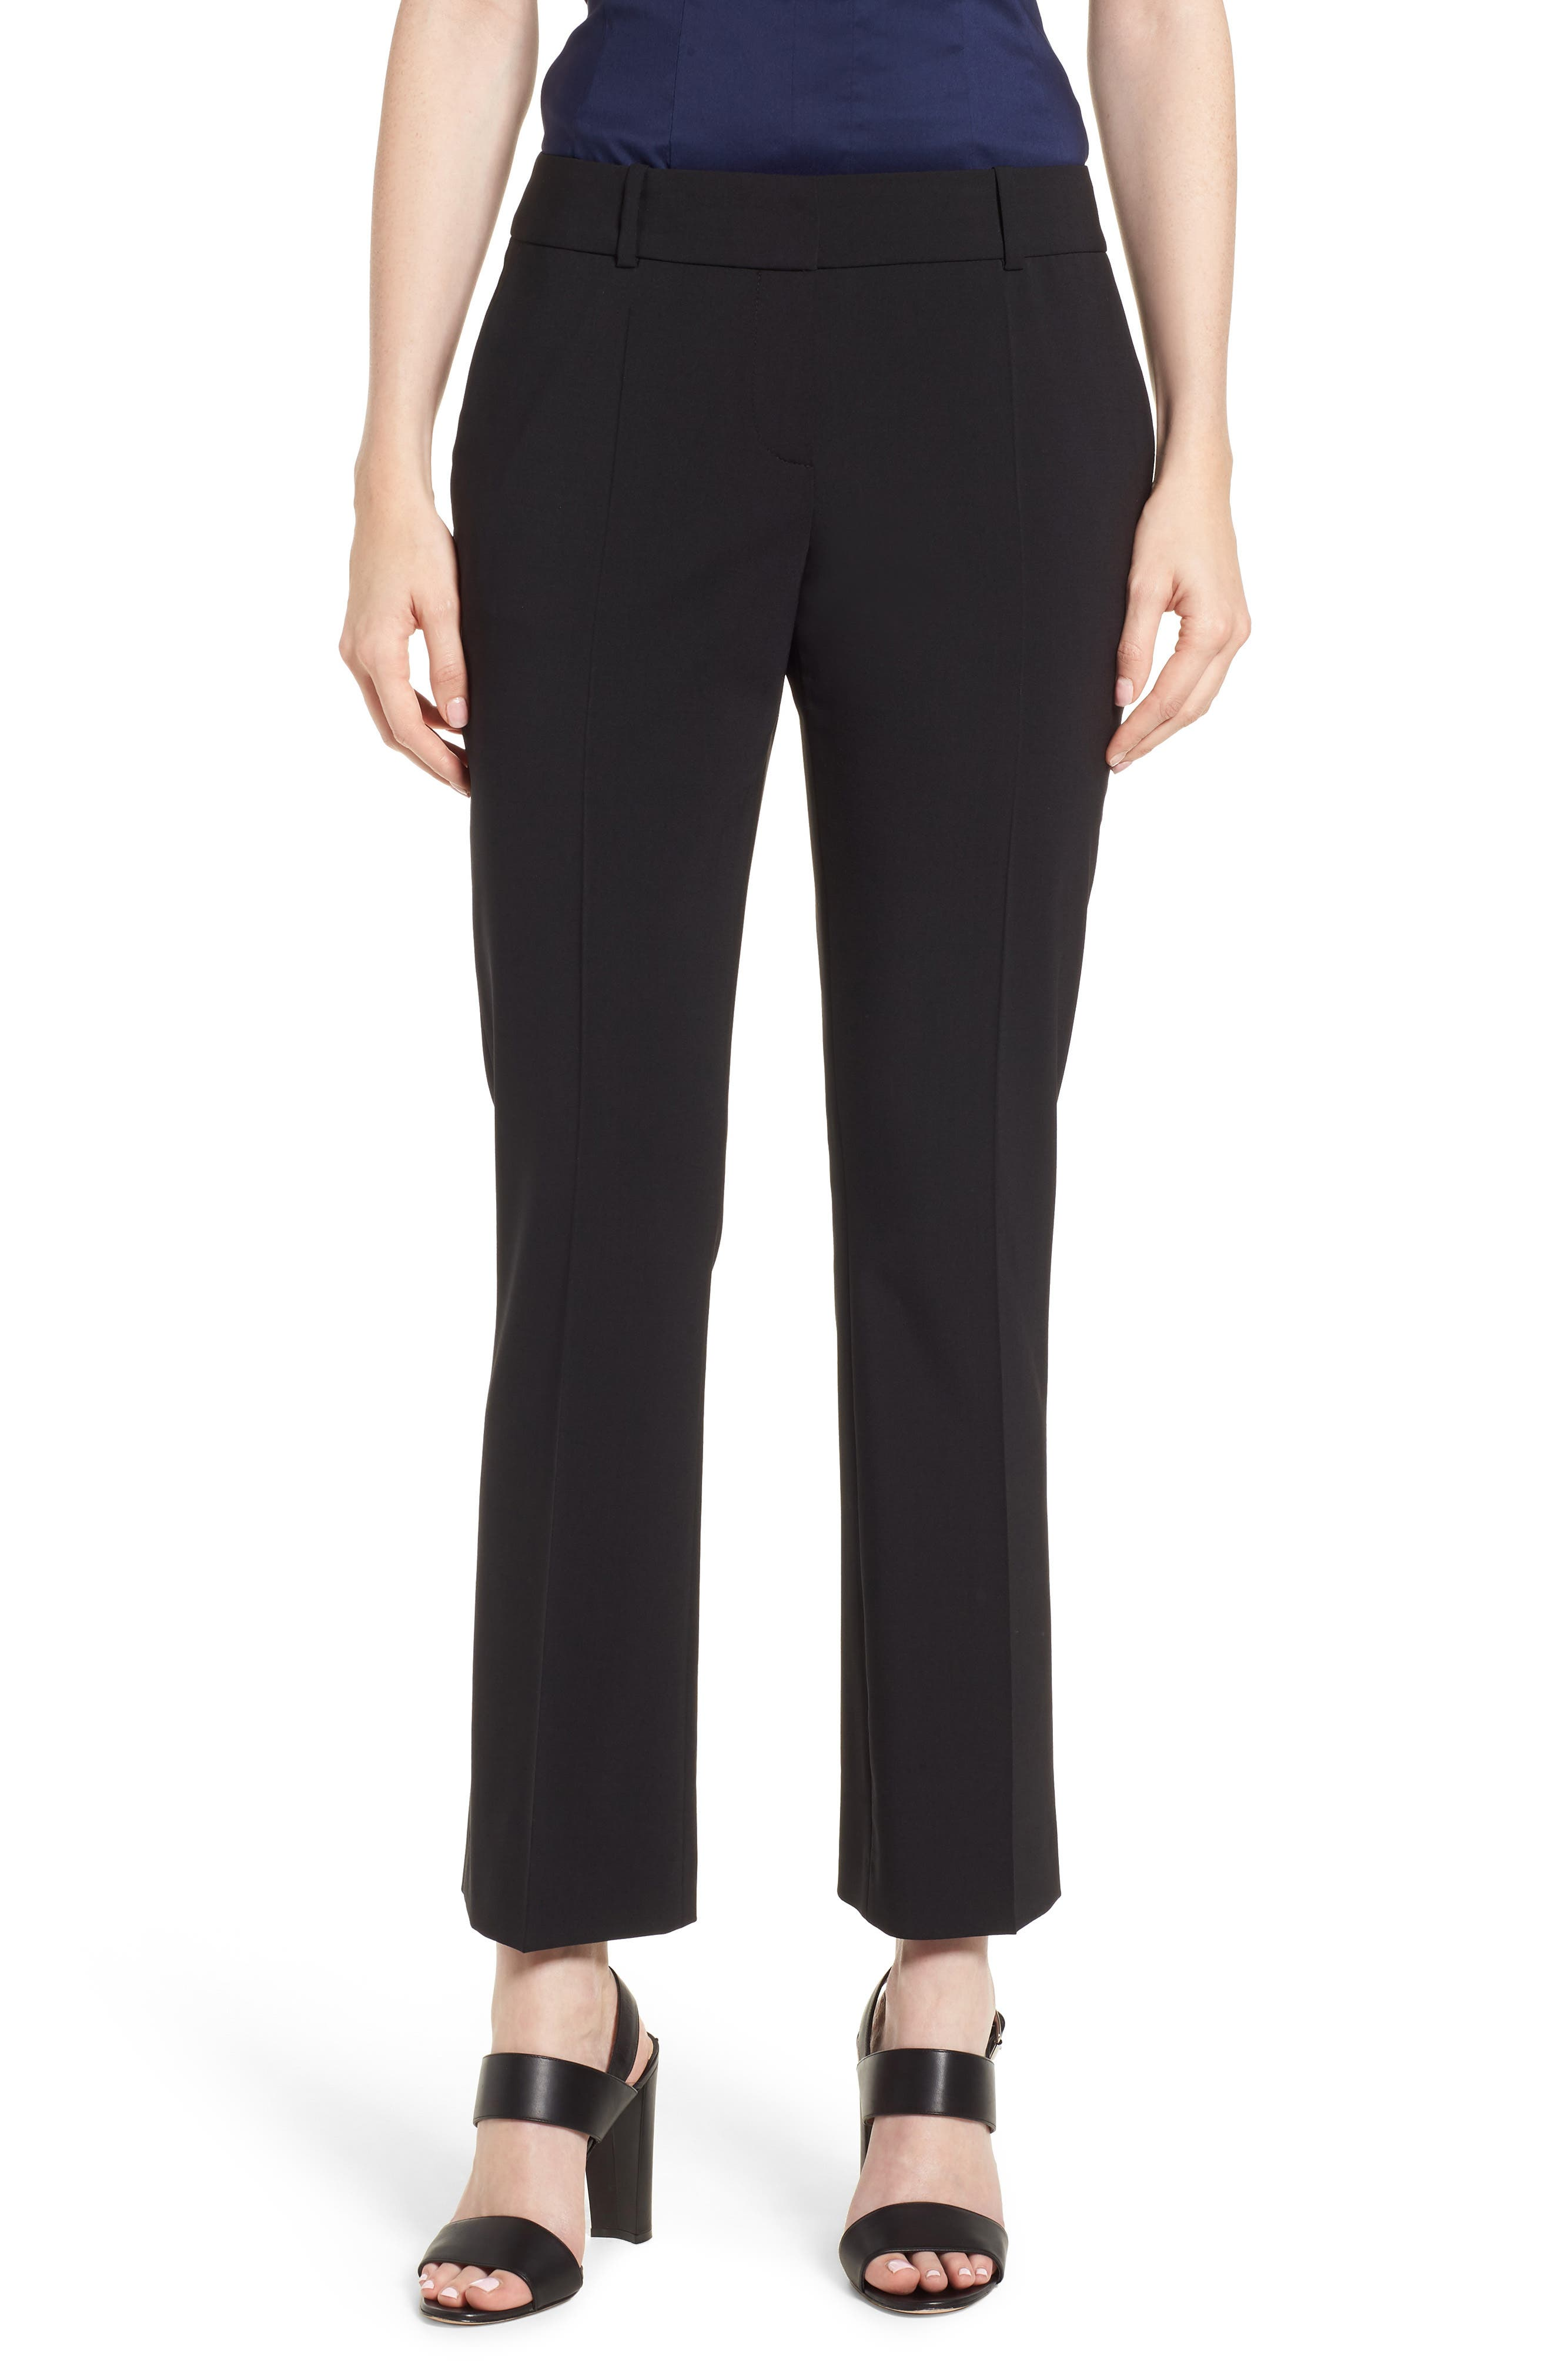 Talenara Tropical Stretch Wool Ankle Trousers,                         Main,                         color, 001